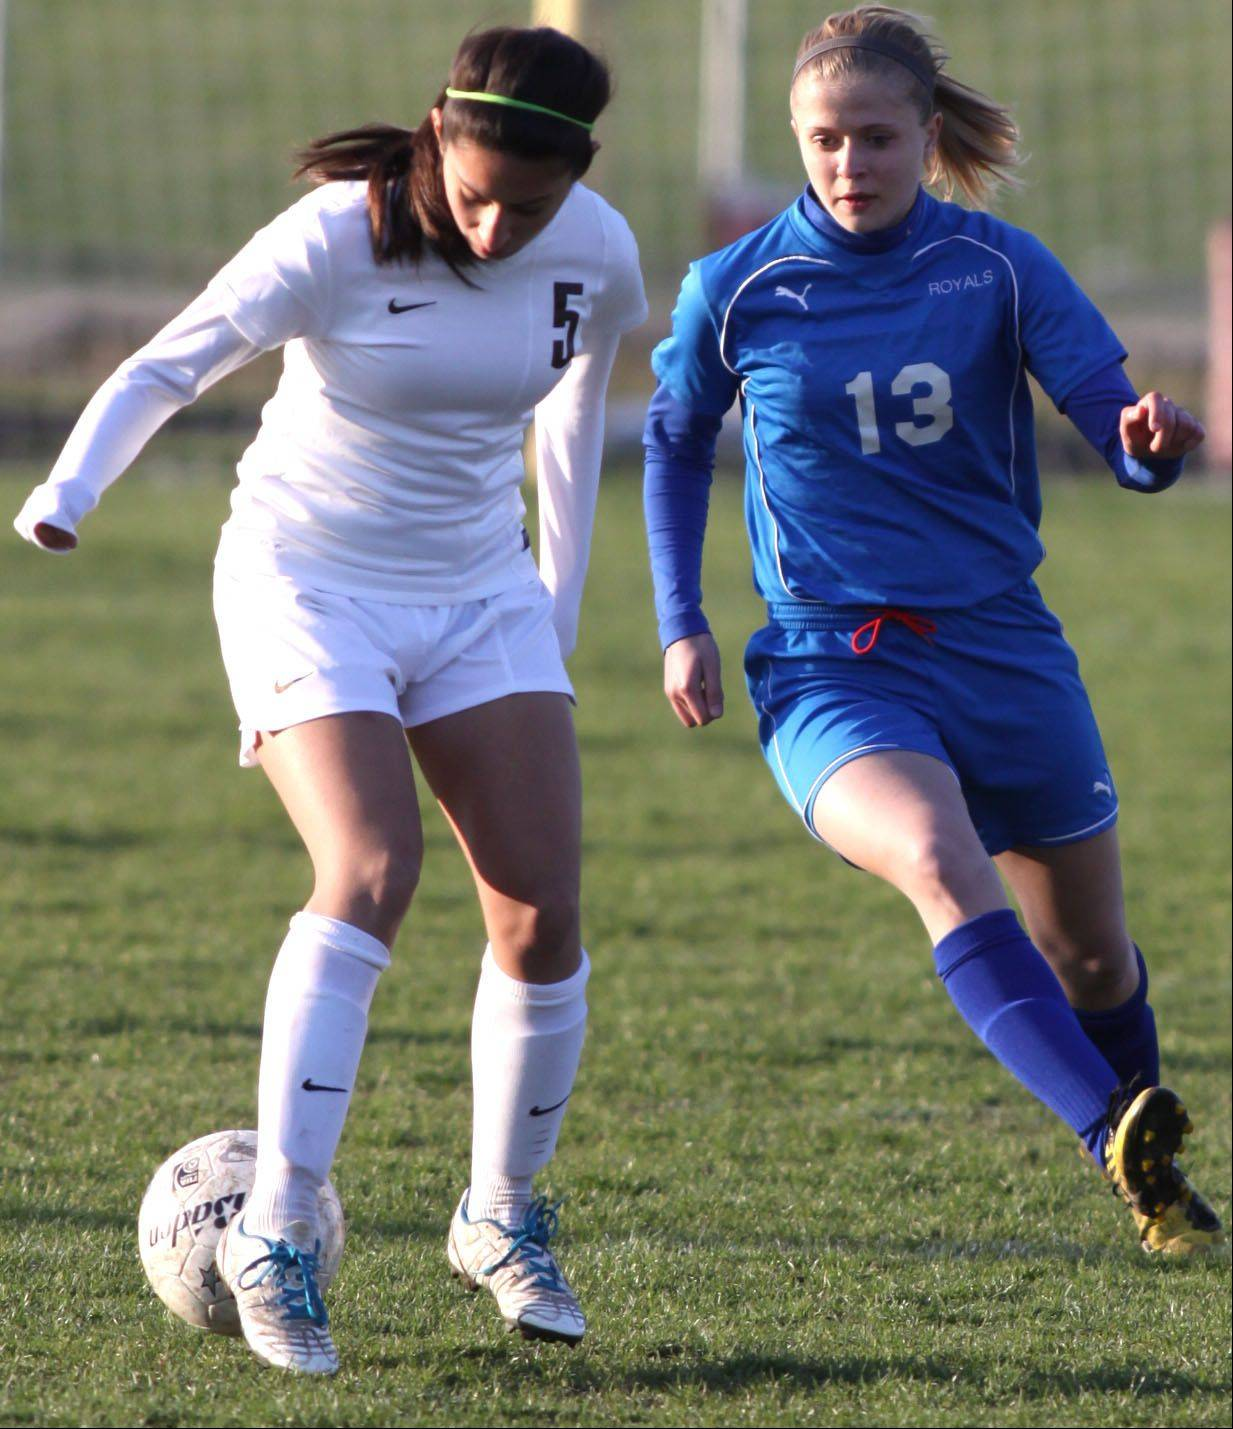 Larkin's Jaci Bridgers, right, and Elgin's Jenny Lopez battle for control of the ball at Memorial Field in Elgin on Wednesday evening.